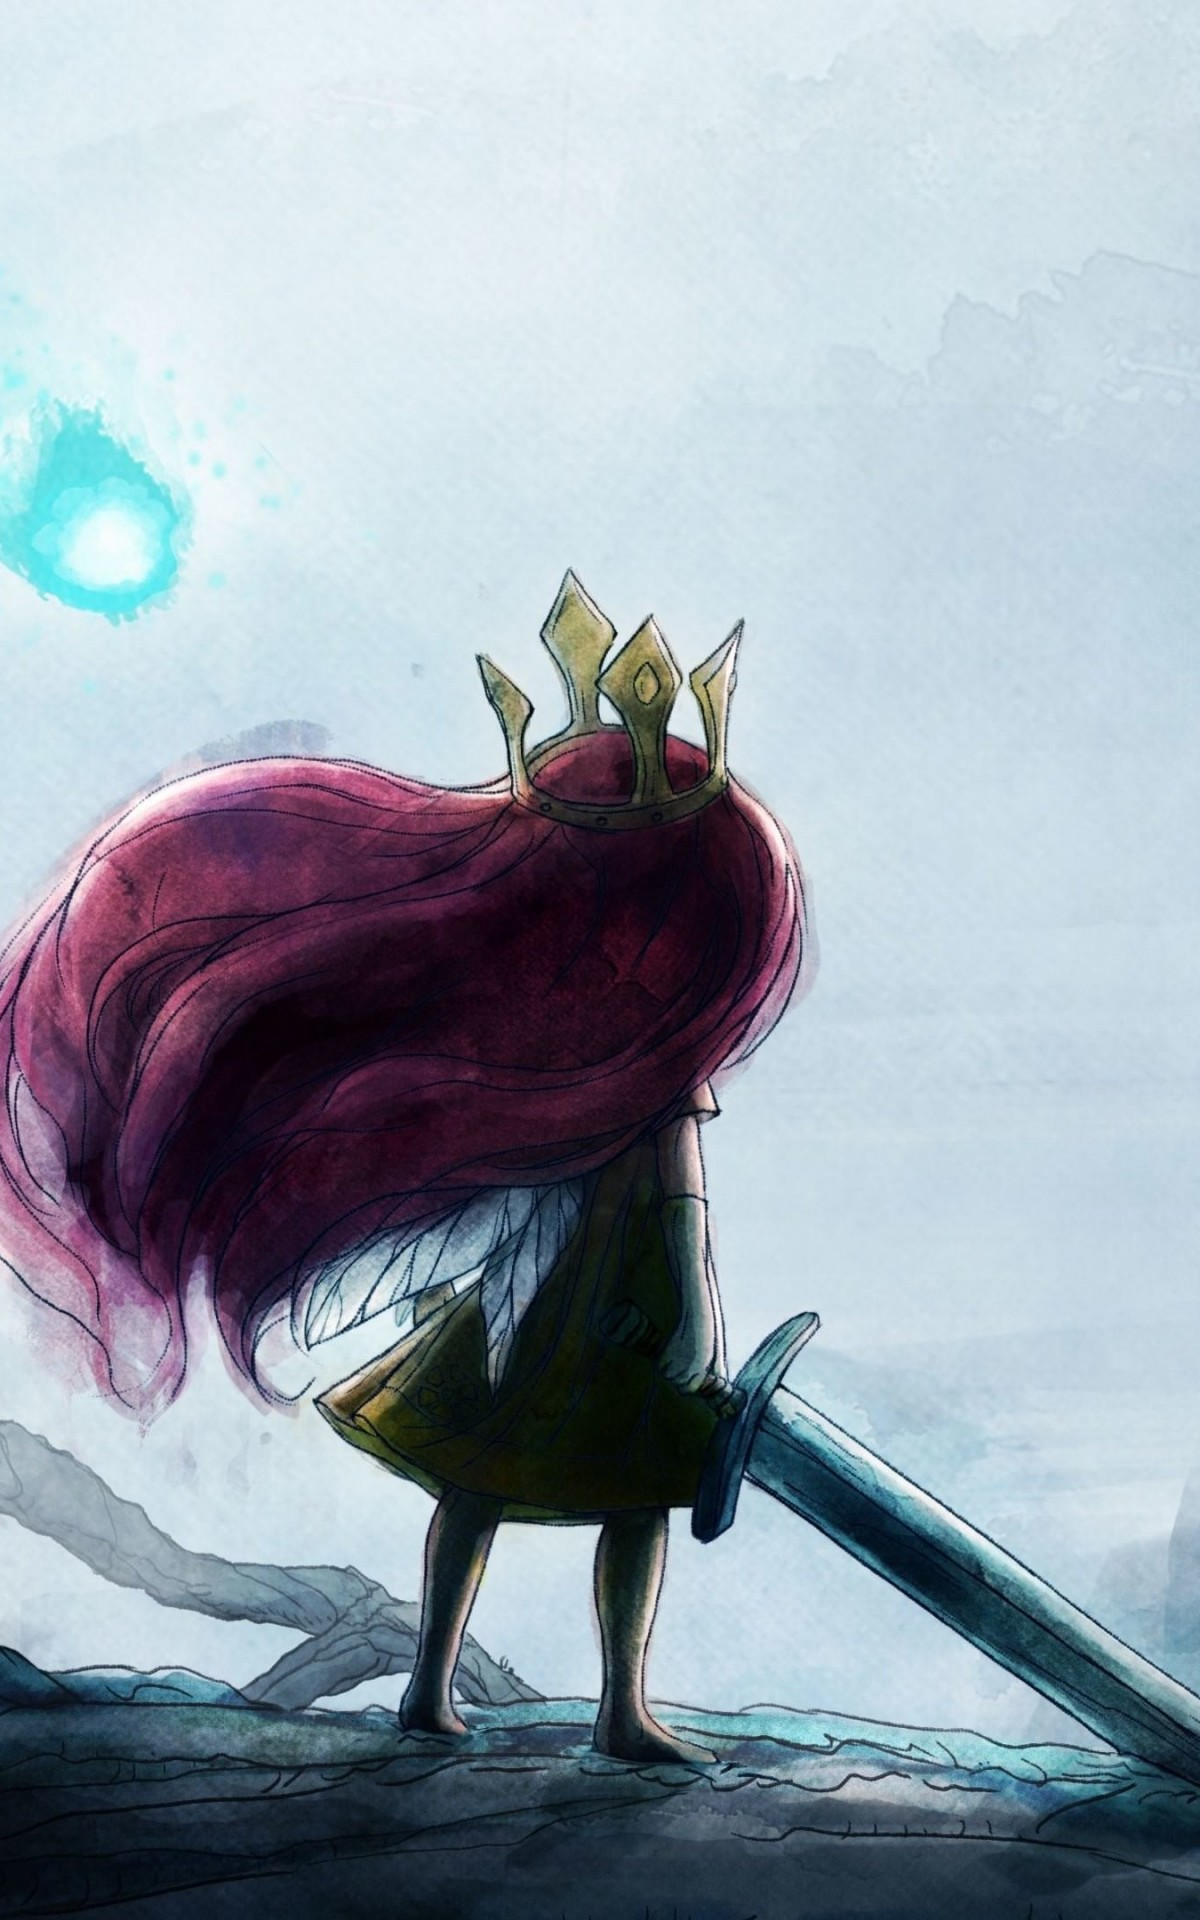 Child Of Light Wallpaper for Amazon Kindle Fire HDX